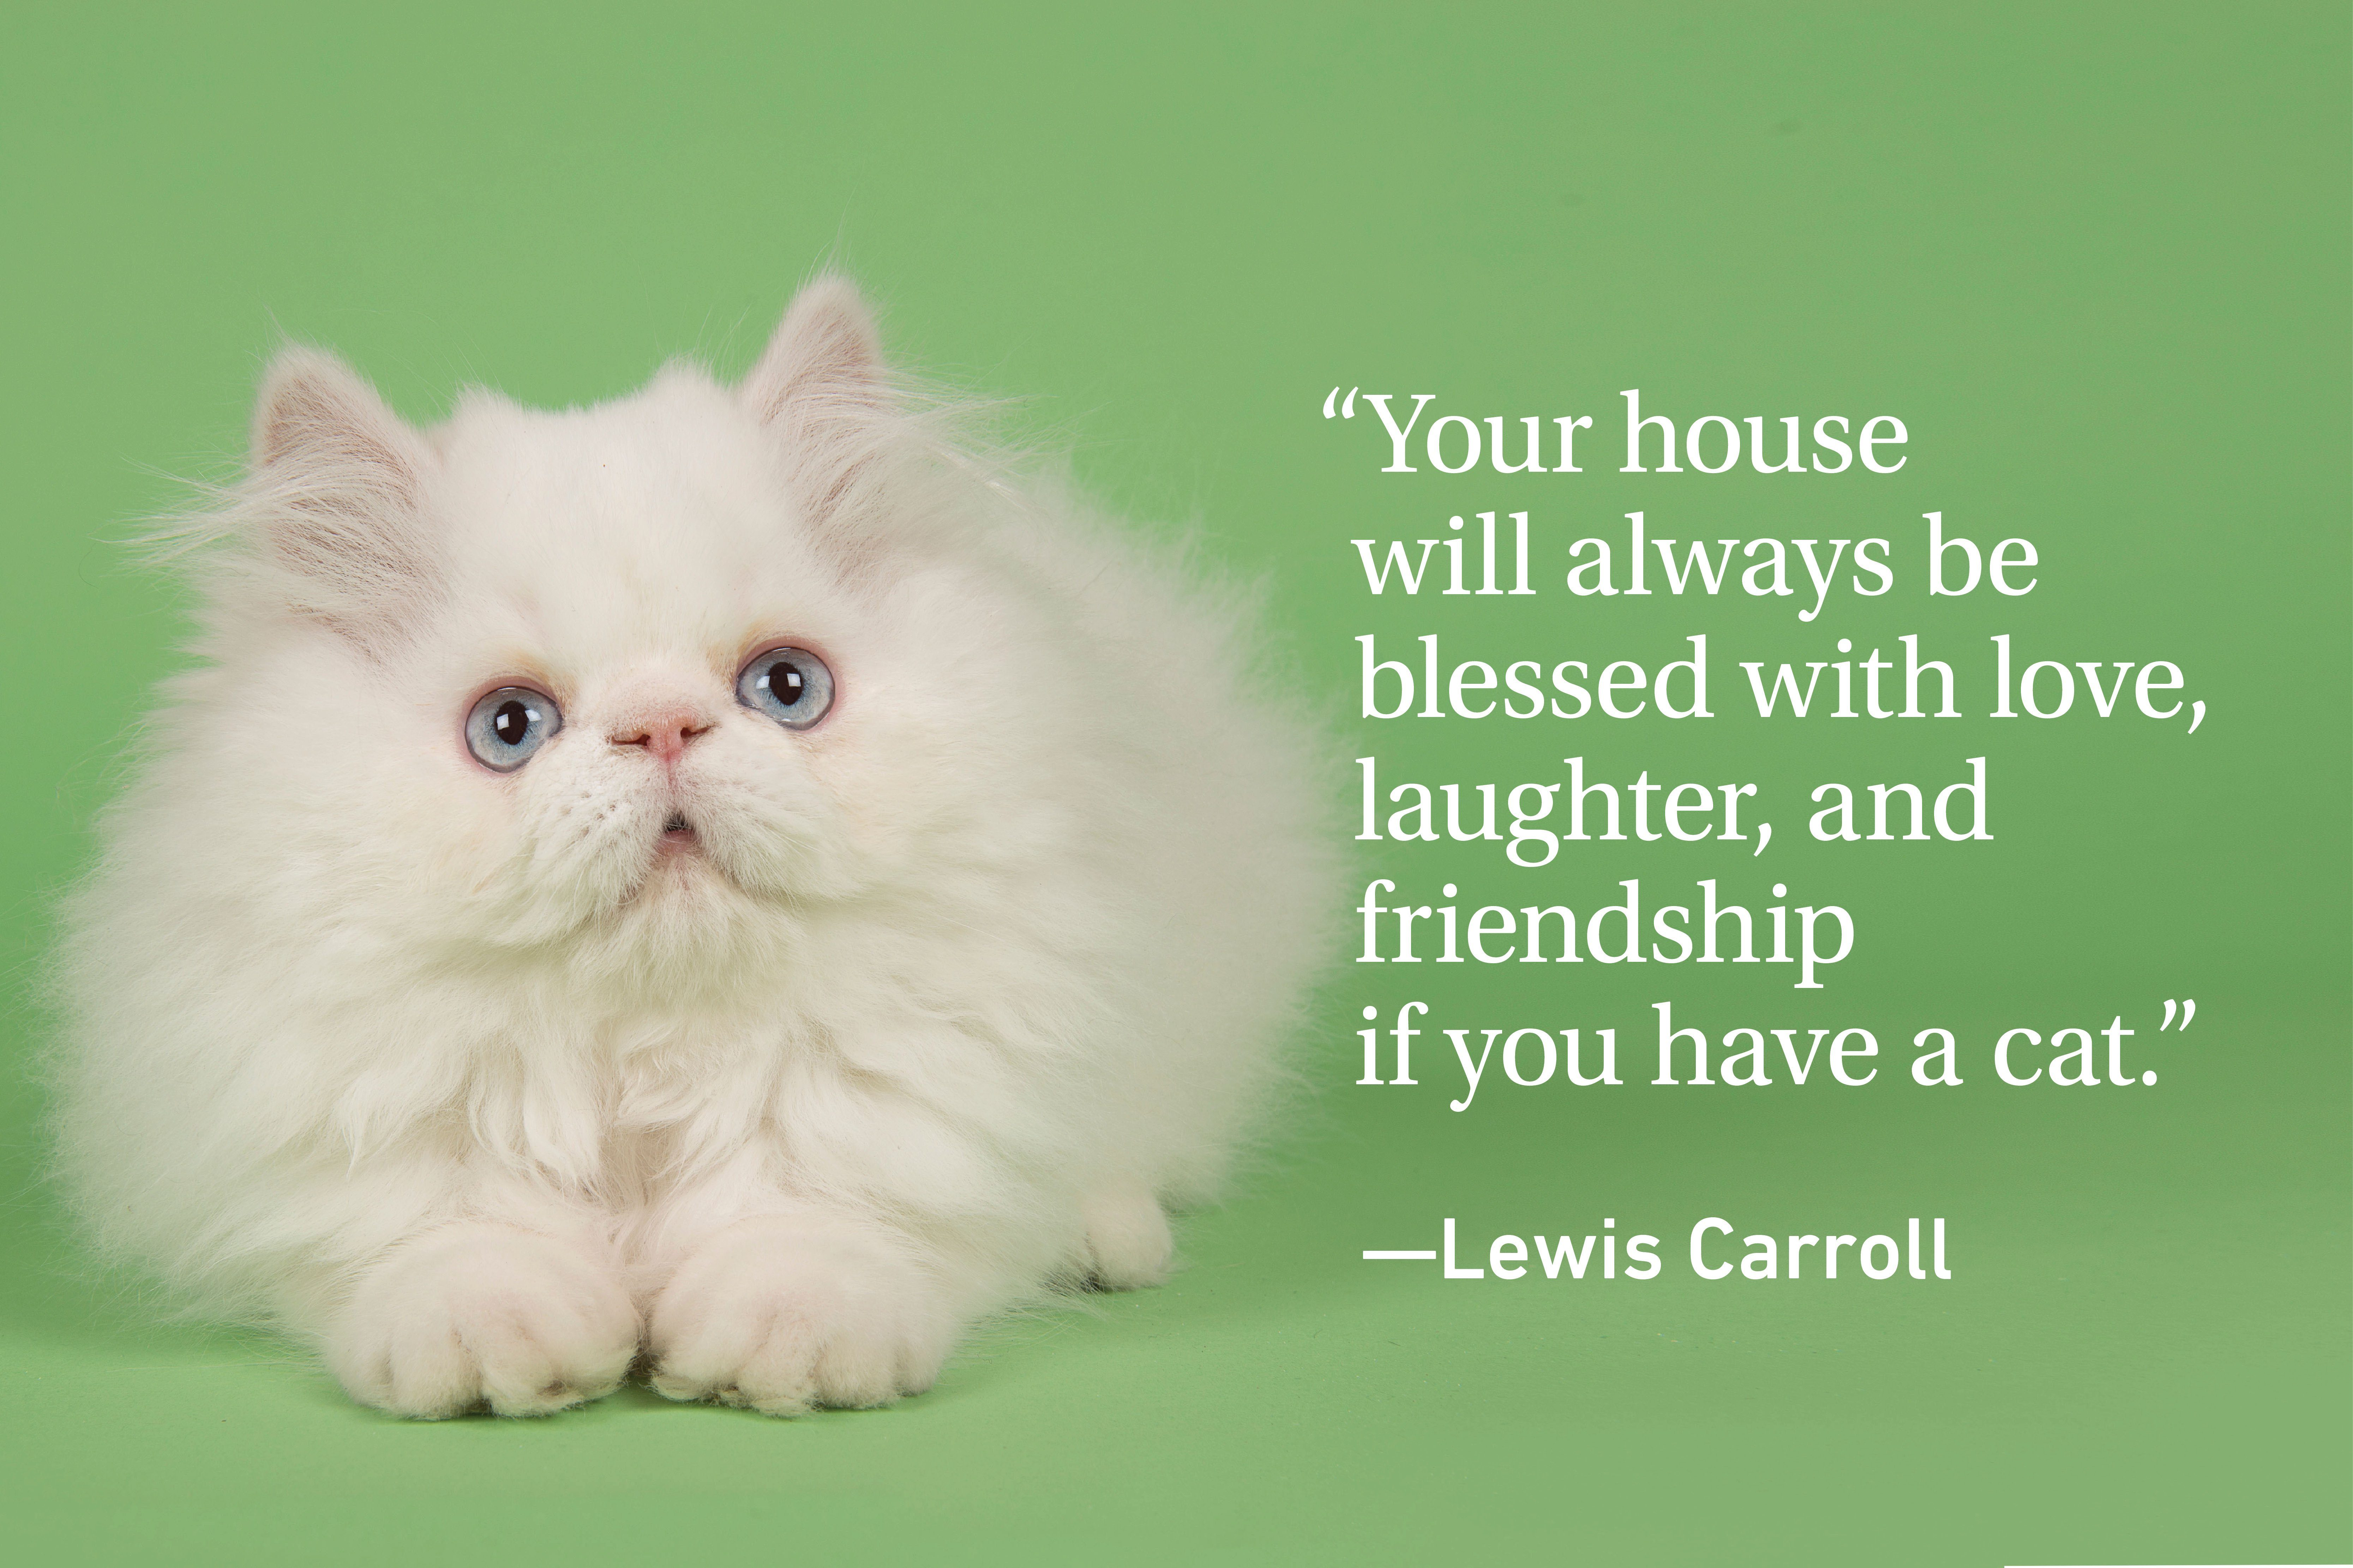 Cat quote on green background with a white cat